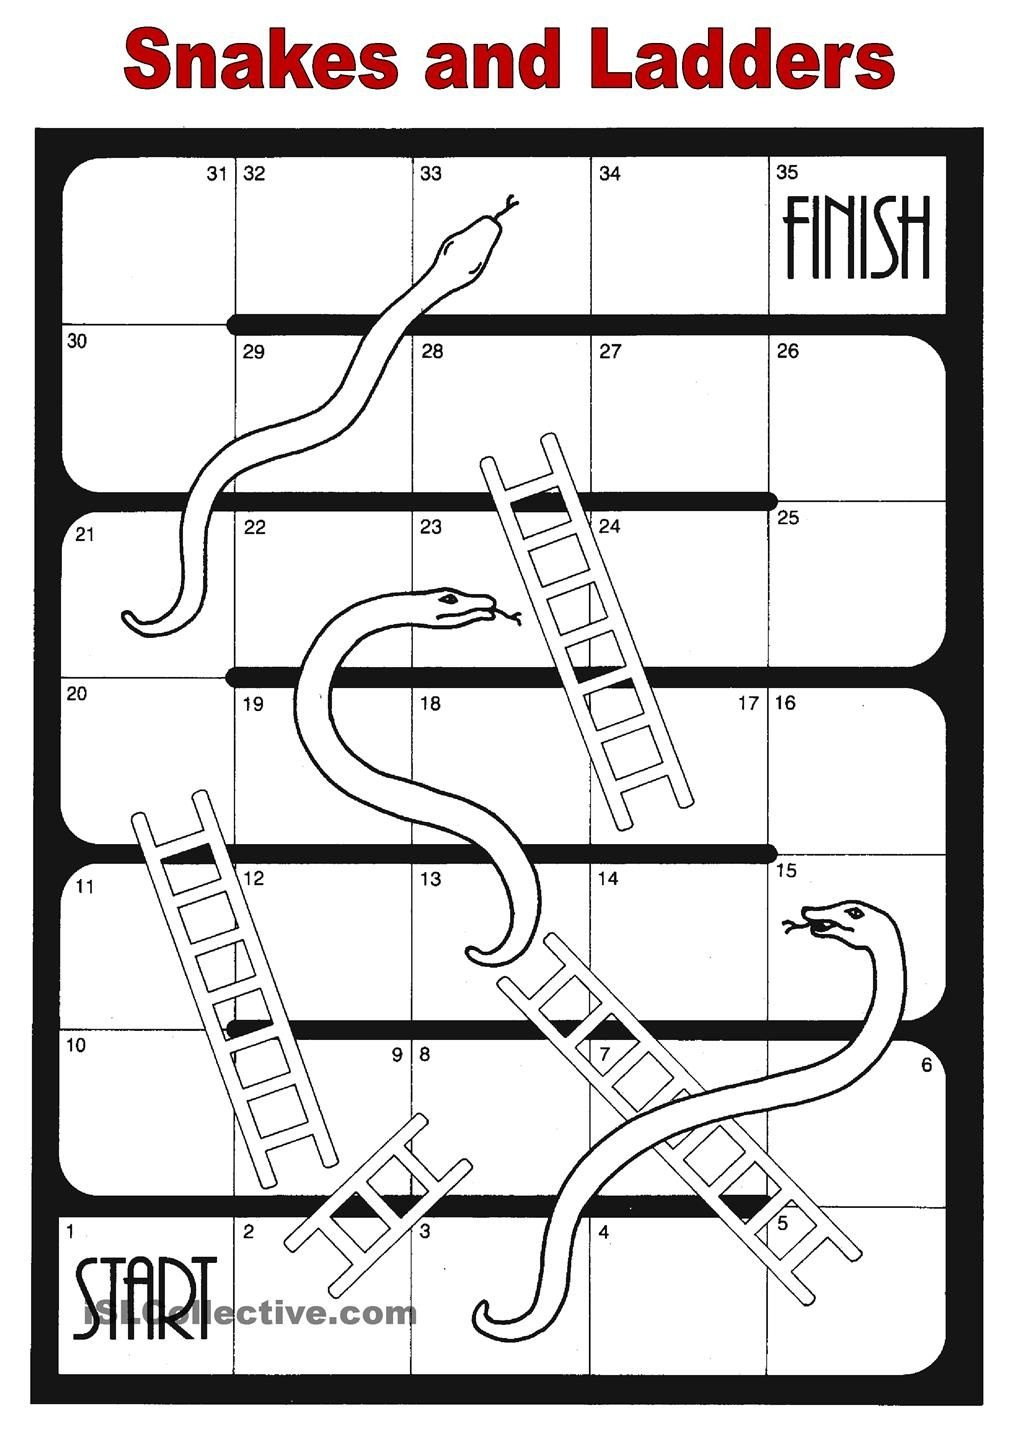 Snakes And Ladders | Speech-Hearing-Language (Professional Board - Free Snakes And Ladders Printable